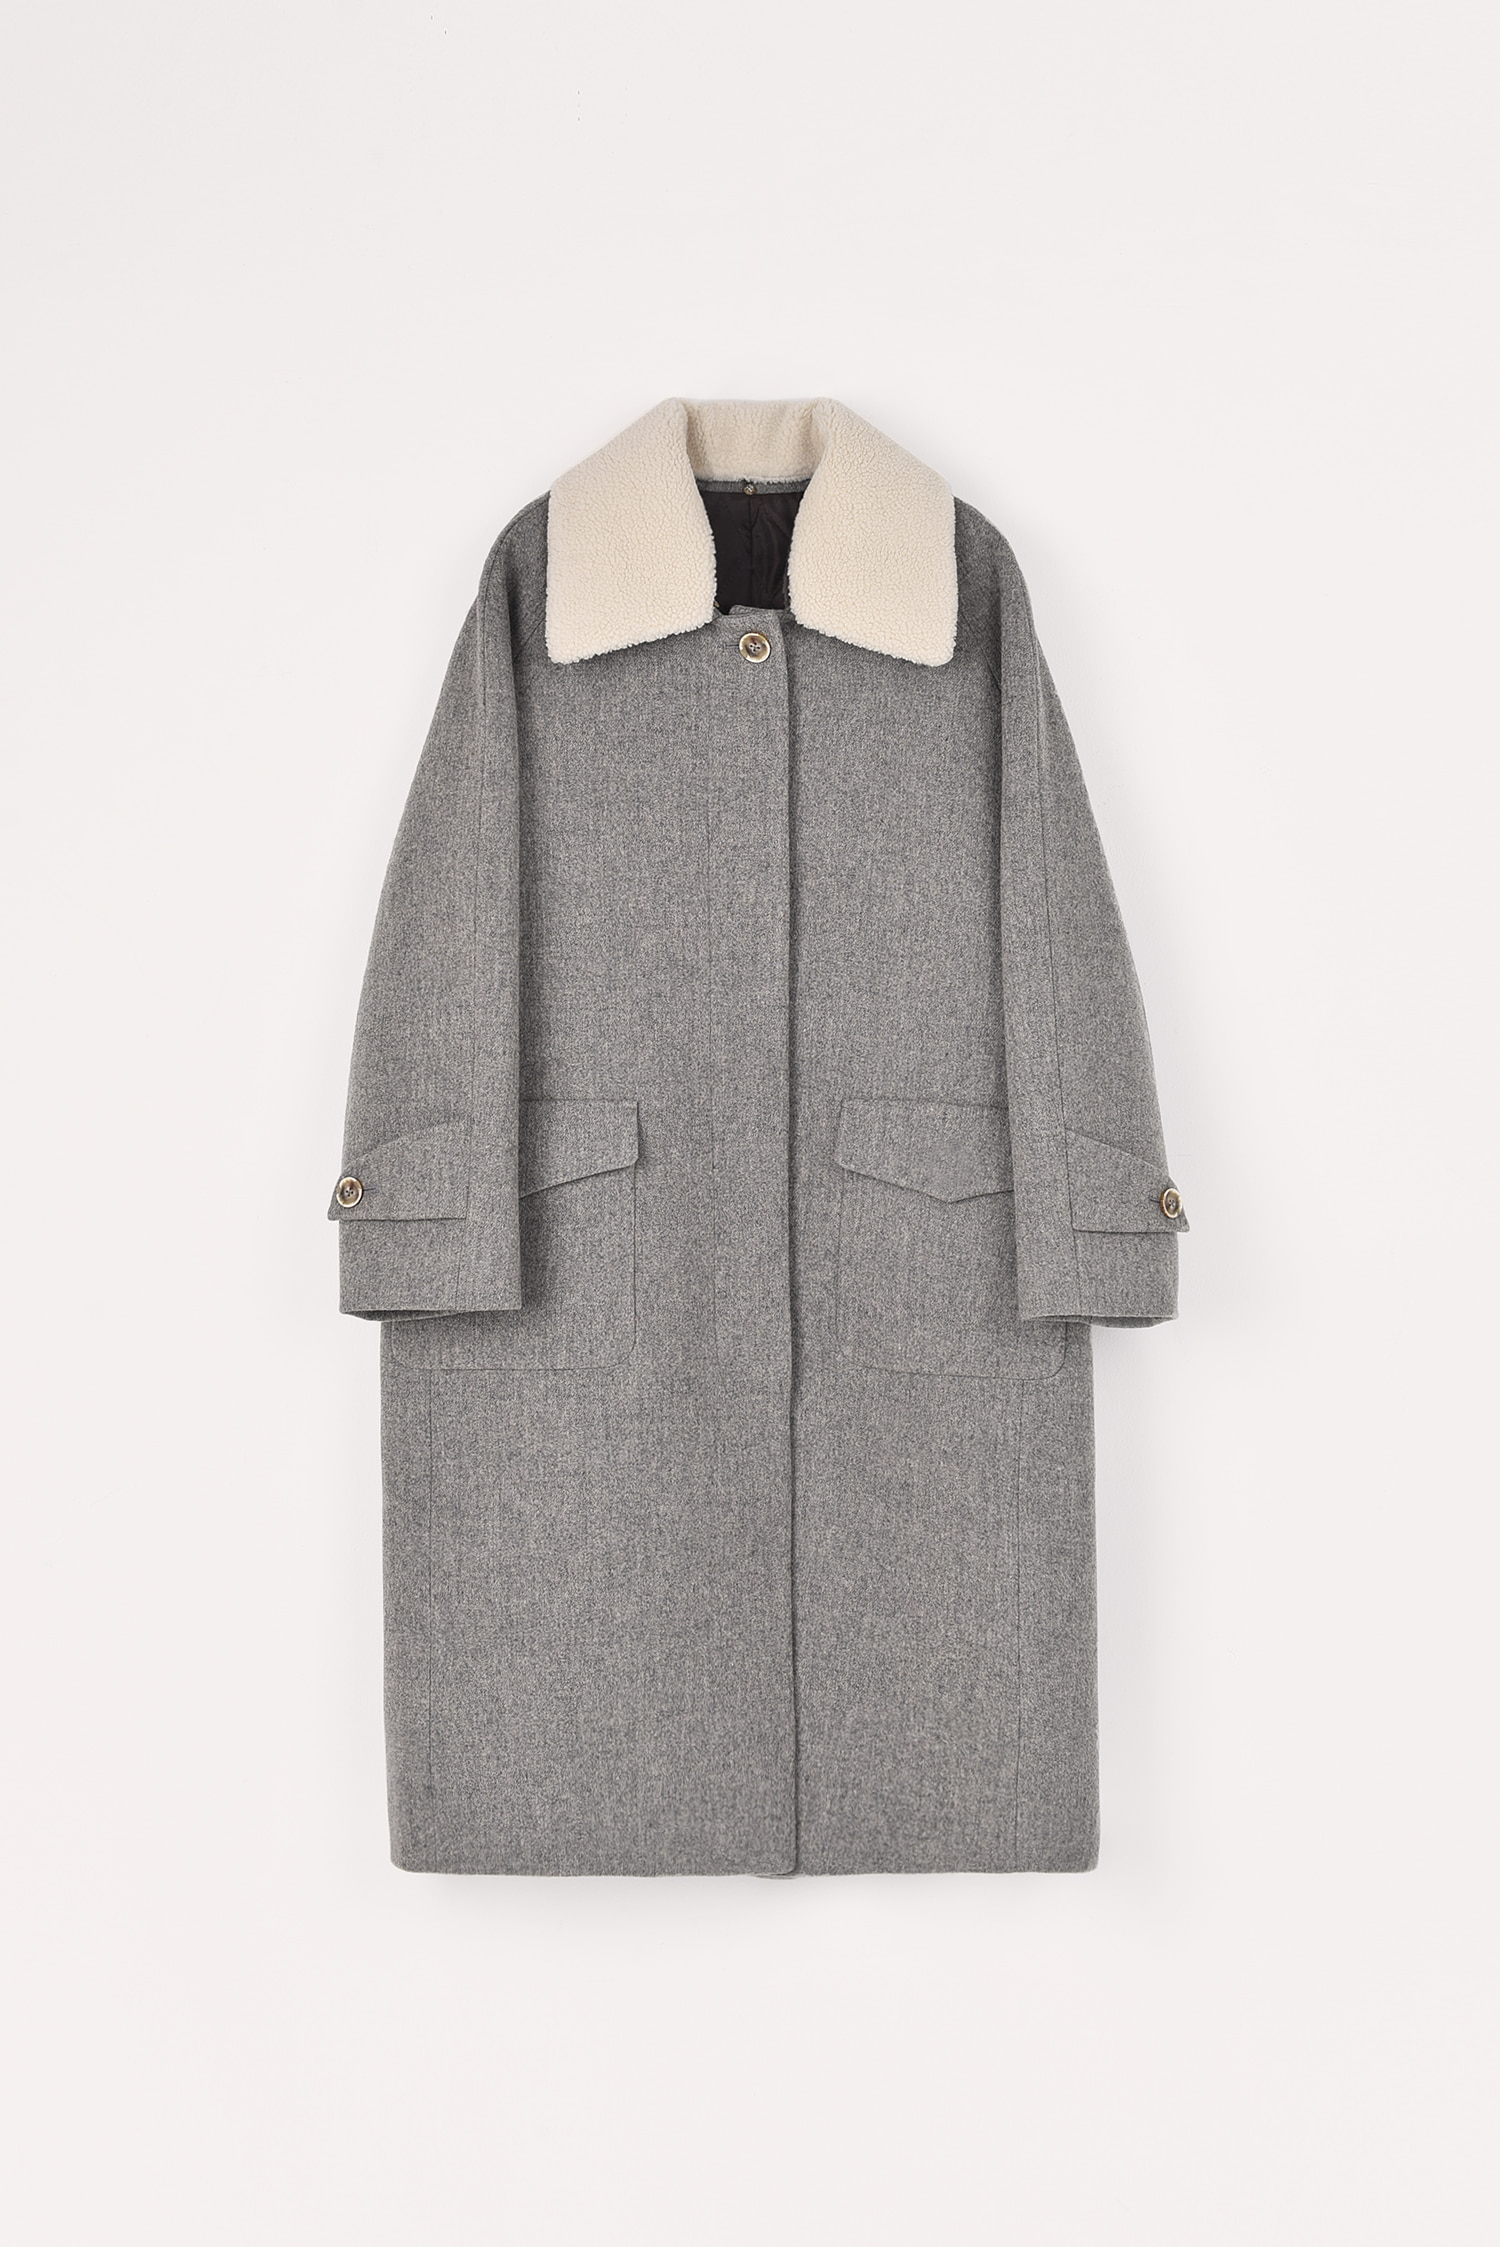 2 RE-ORDER / Thinsulate padded wool coat (Long / Oatmeal grey)